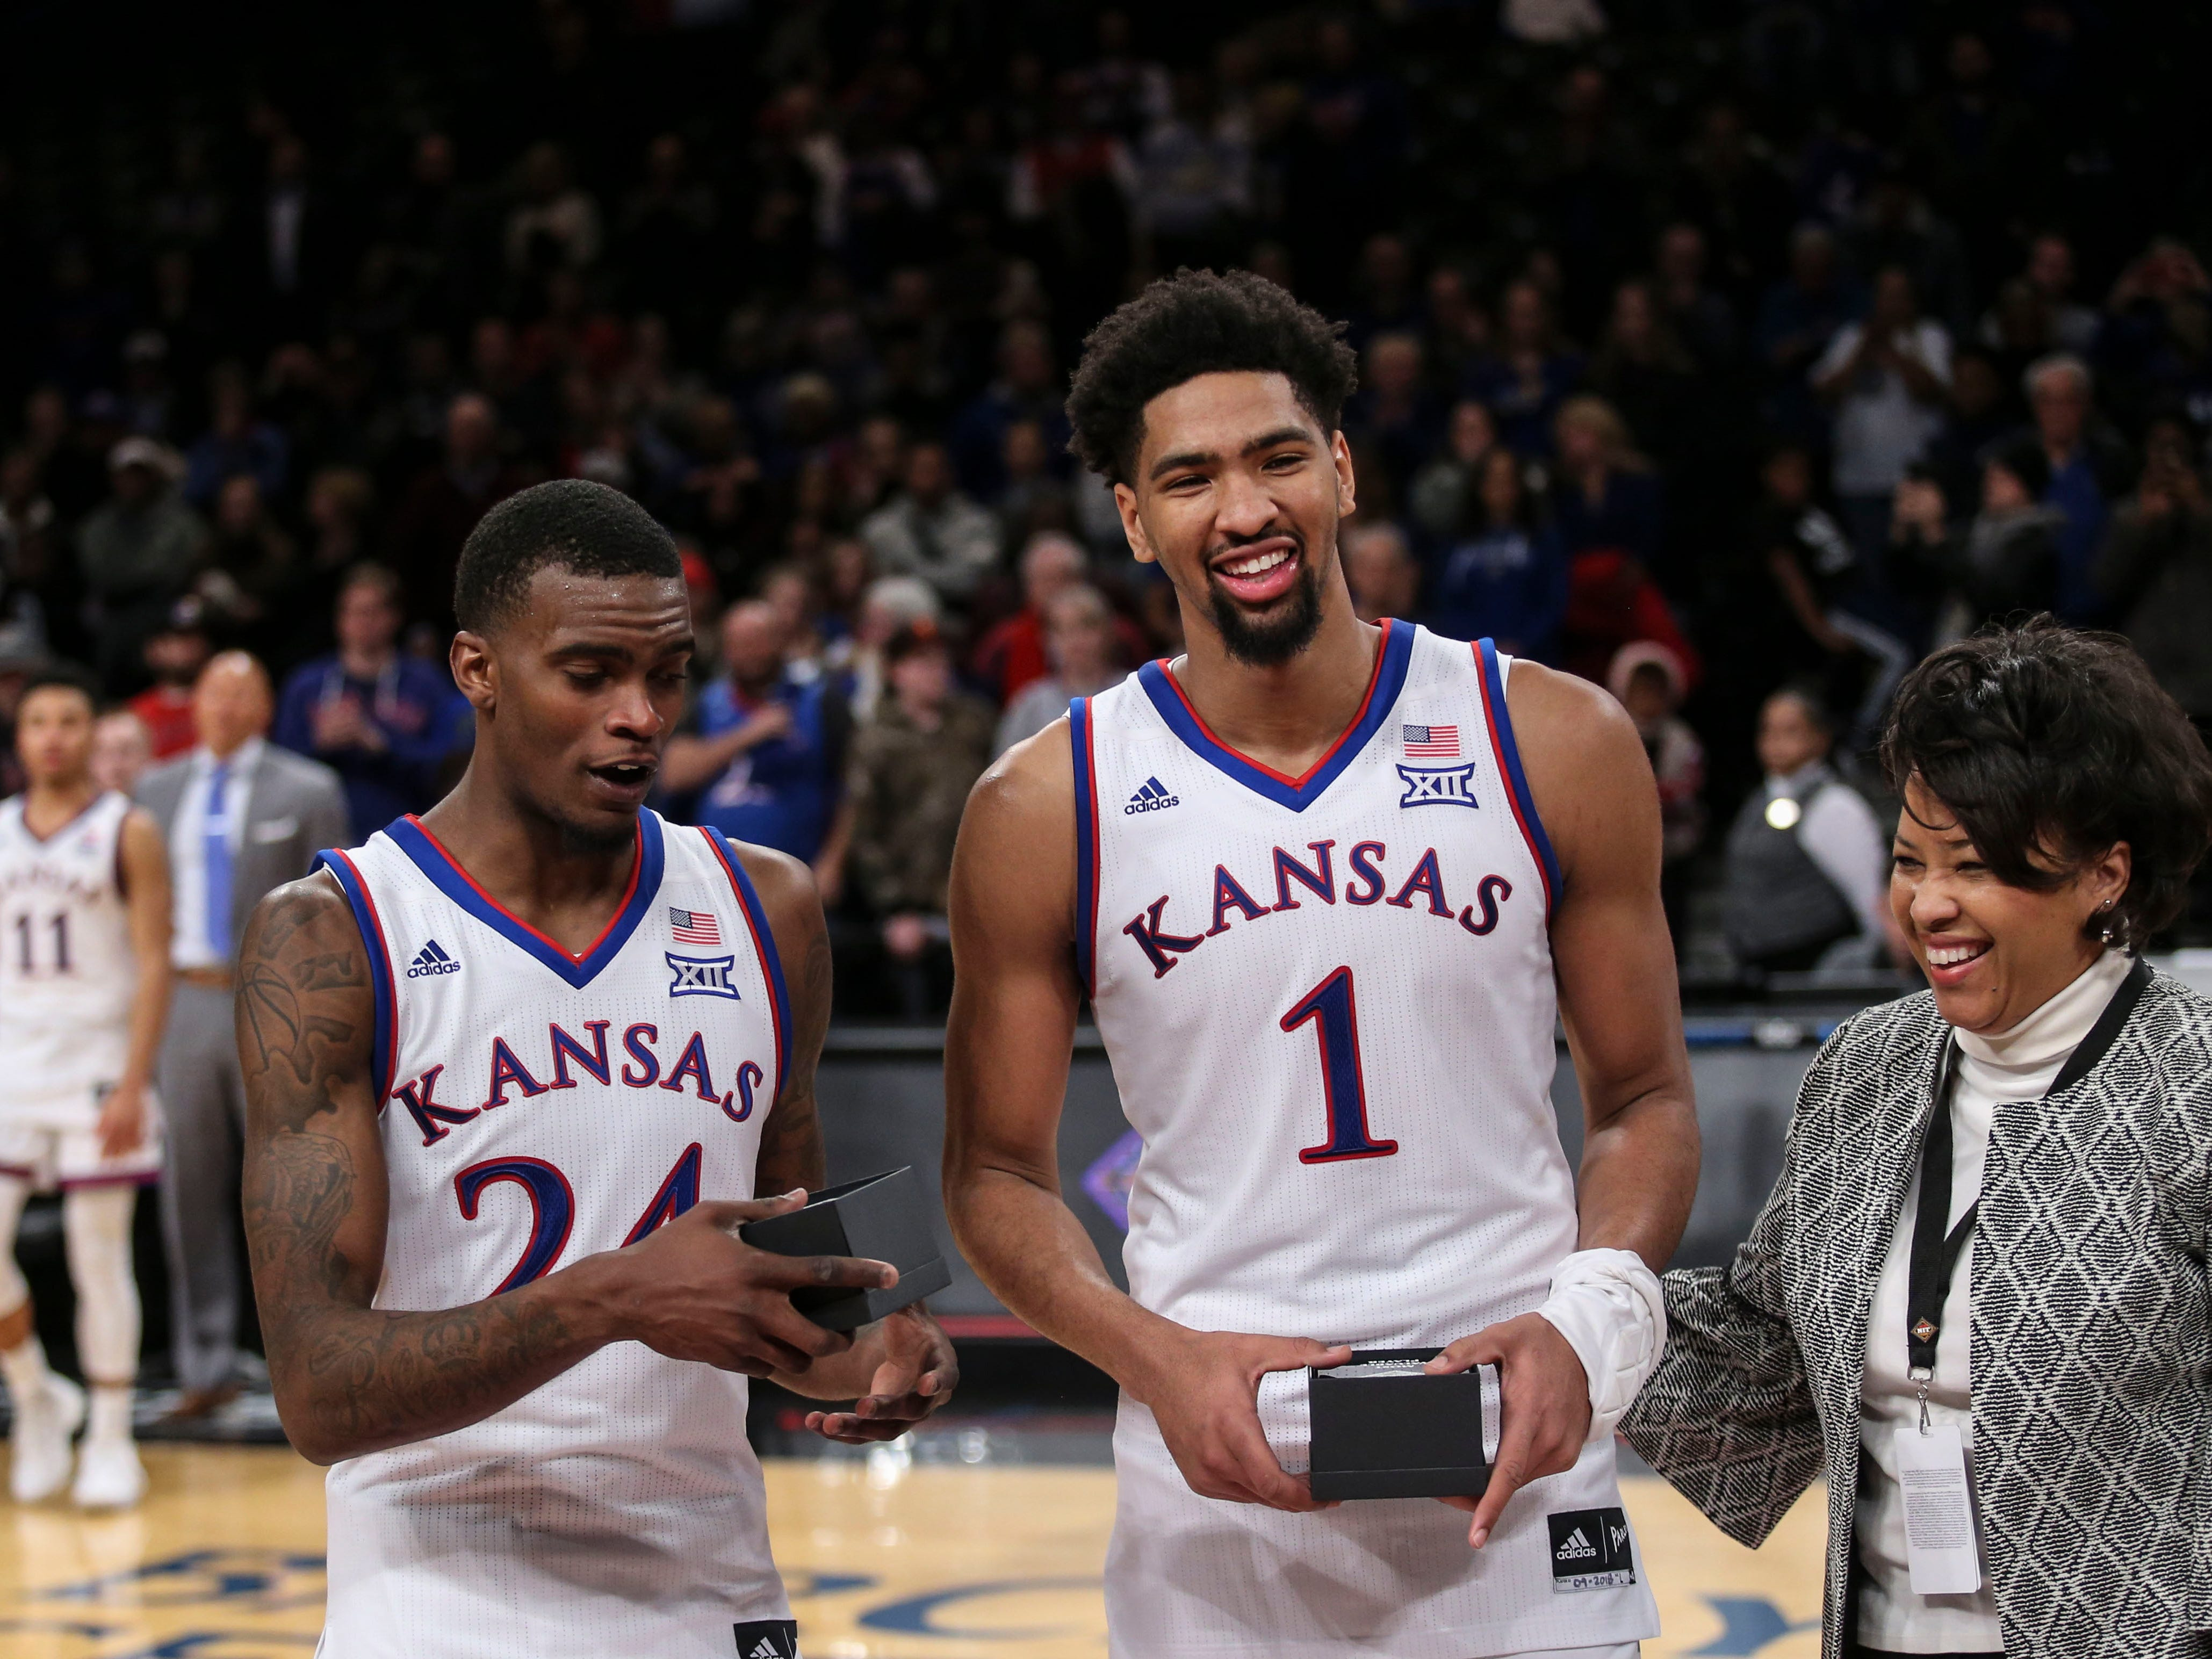 Nov 23, 2018; Brooklyn, NY, USA; Kansas Jayhawks forward Dedric Lawson (1) and guard Lagerald Vick (24) after beating the Tennessee Volunteers in the NIT Season Tipoff Championship at Barclays Center. Mandatory Credit: Wendell Cruz-USA TODAY Sports